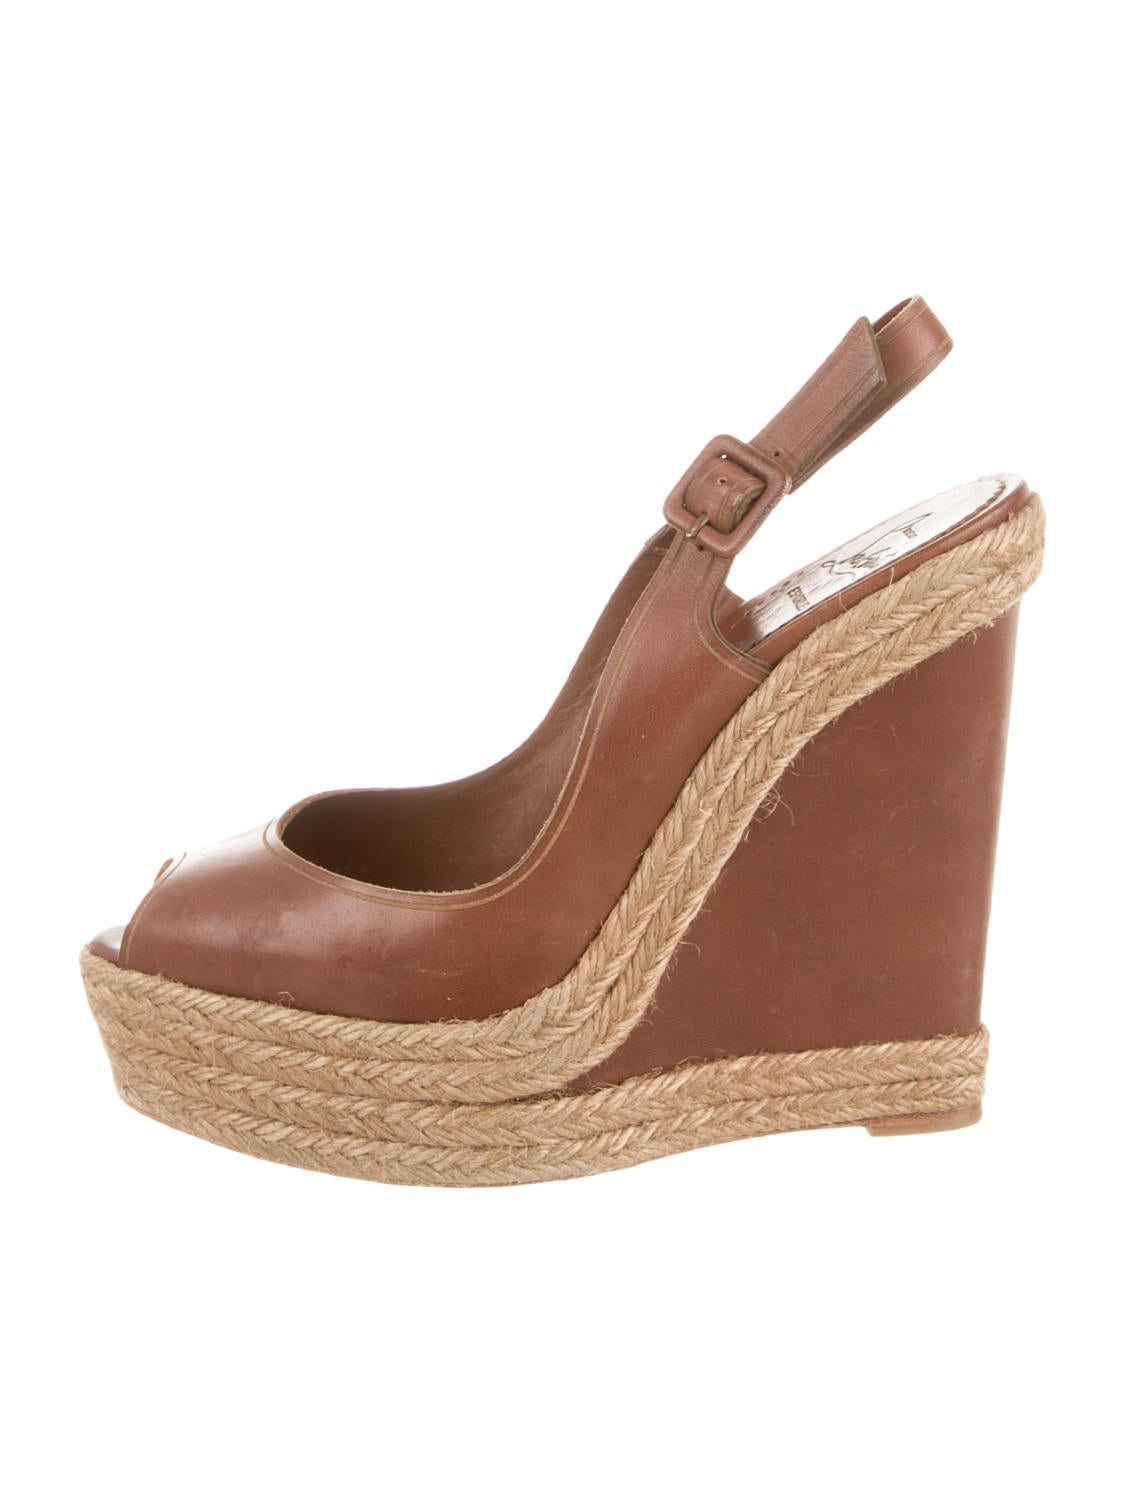 christian louboutin shoes on sale - christian louboutin peep-toe wedges Brown leather - Bbridges